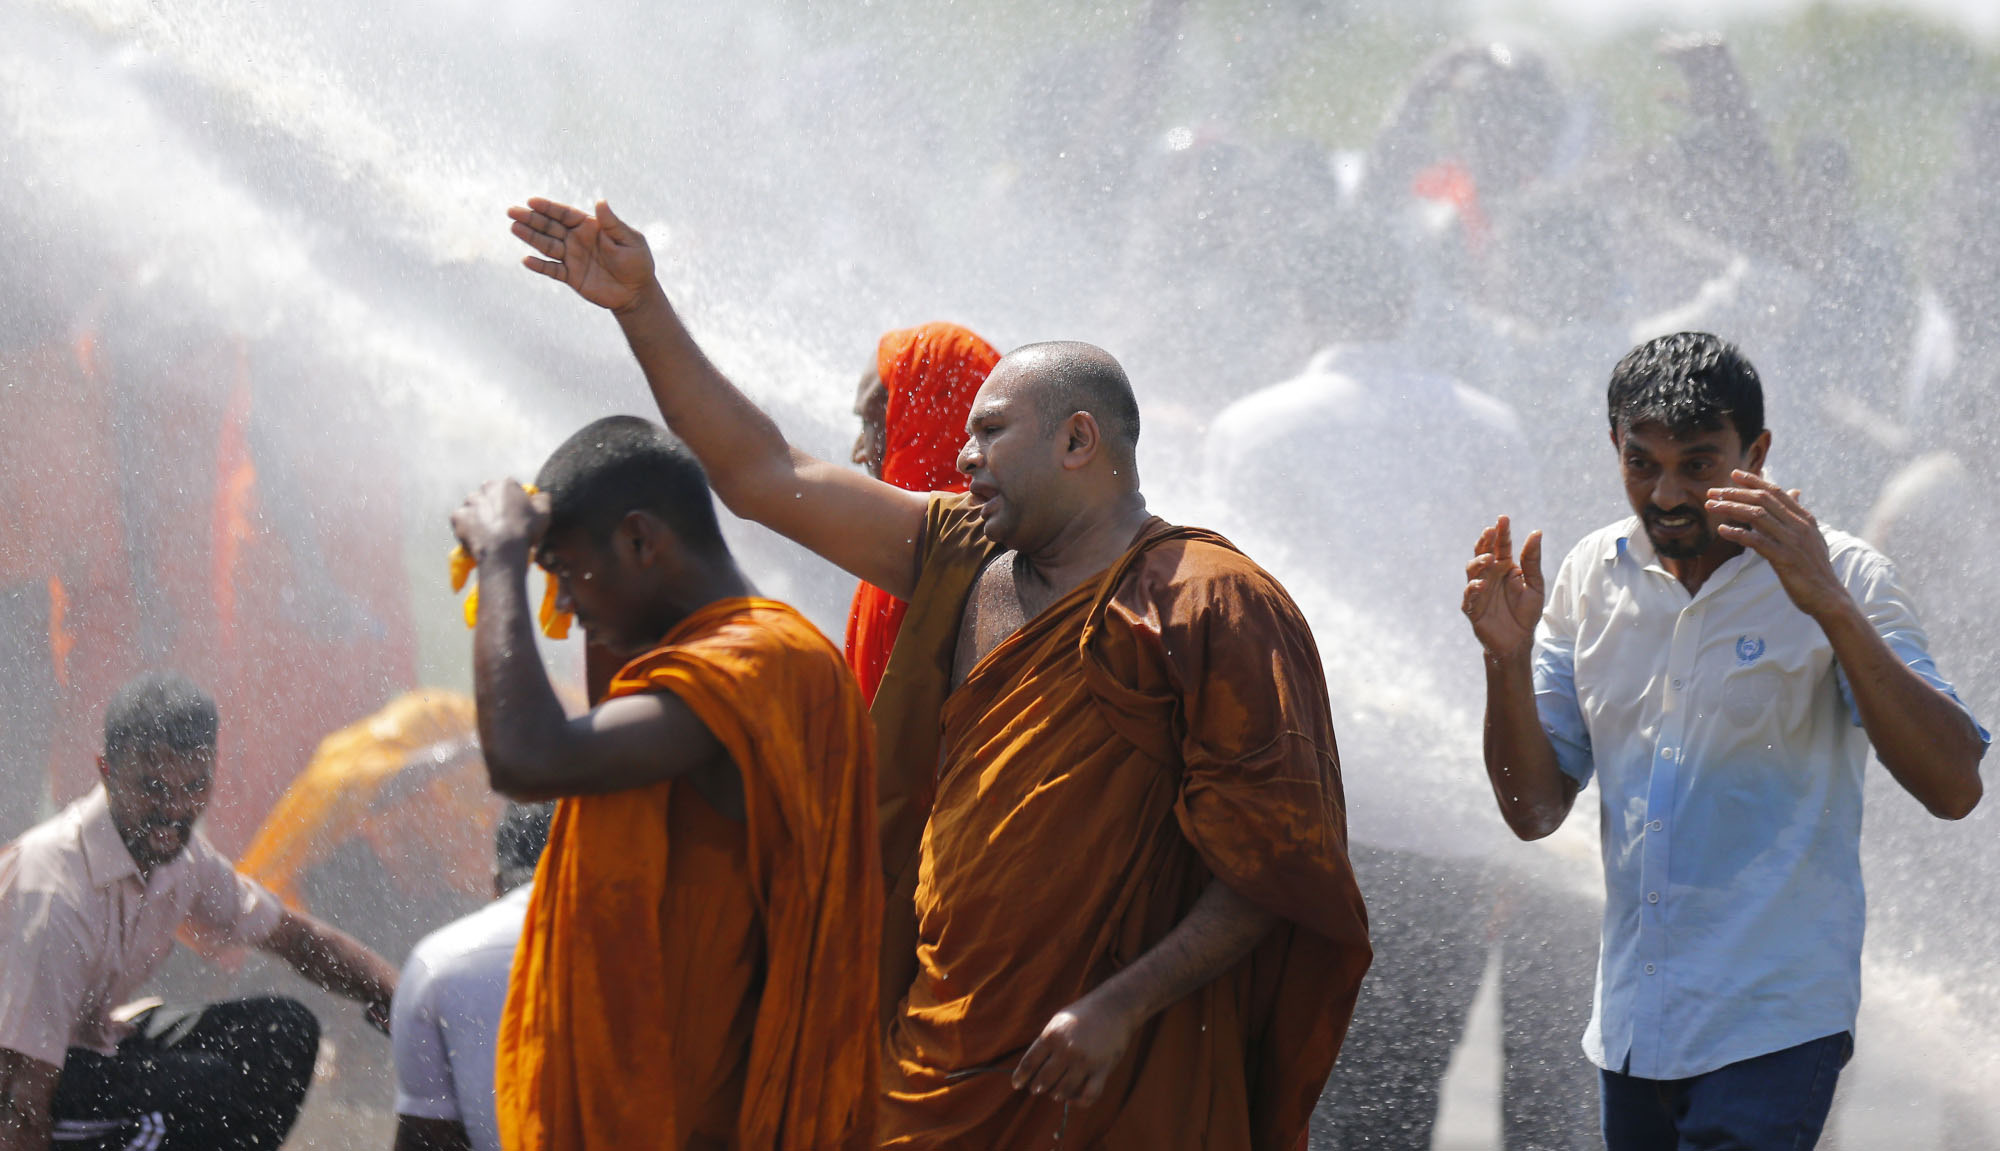 Police in Sri Lanka use water cannon to disperse people protesting a government plan to grant a 99-year lease of Hambantota port to a Chinese company on Jan. 7. Nations caught in debt bondage to China risk losing both their most valuable natural assets and their very sovereignty. | AP